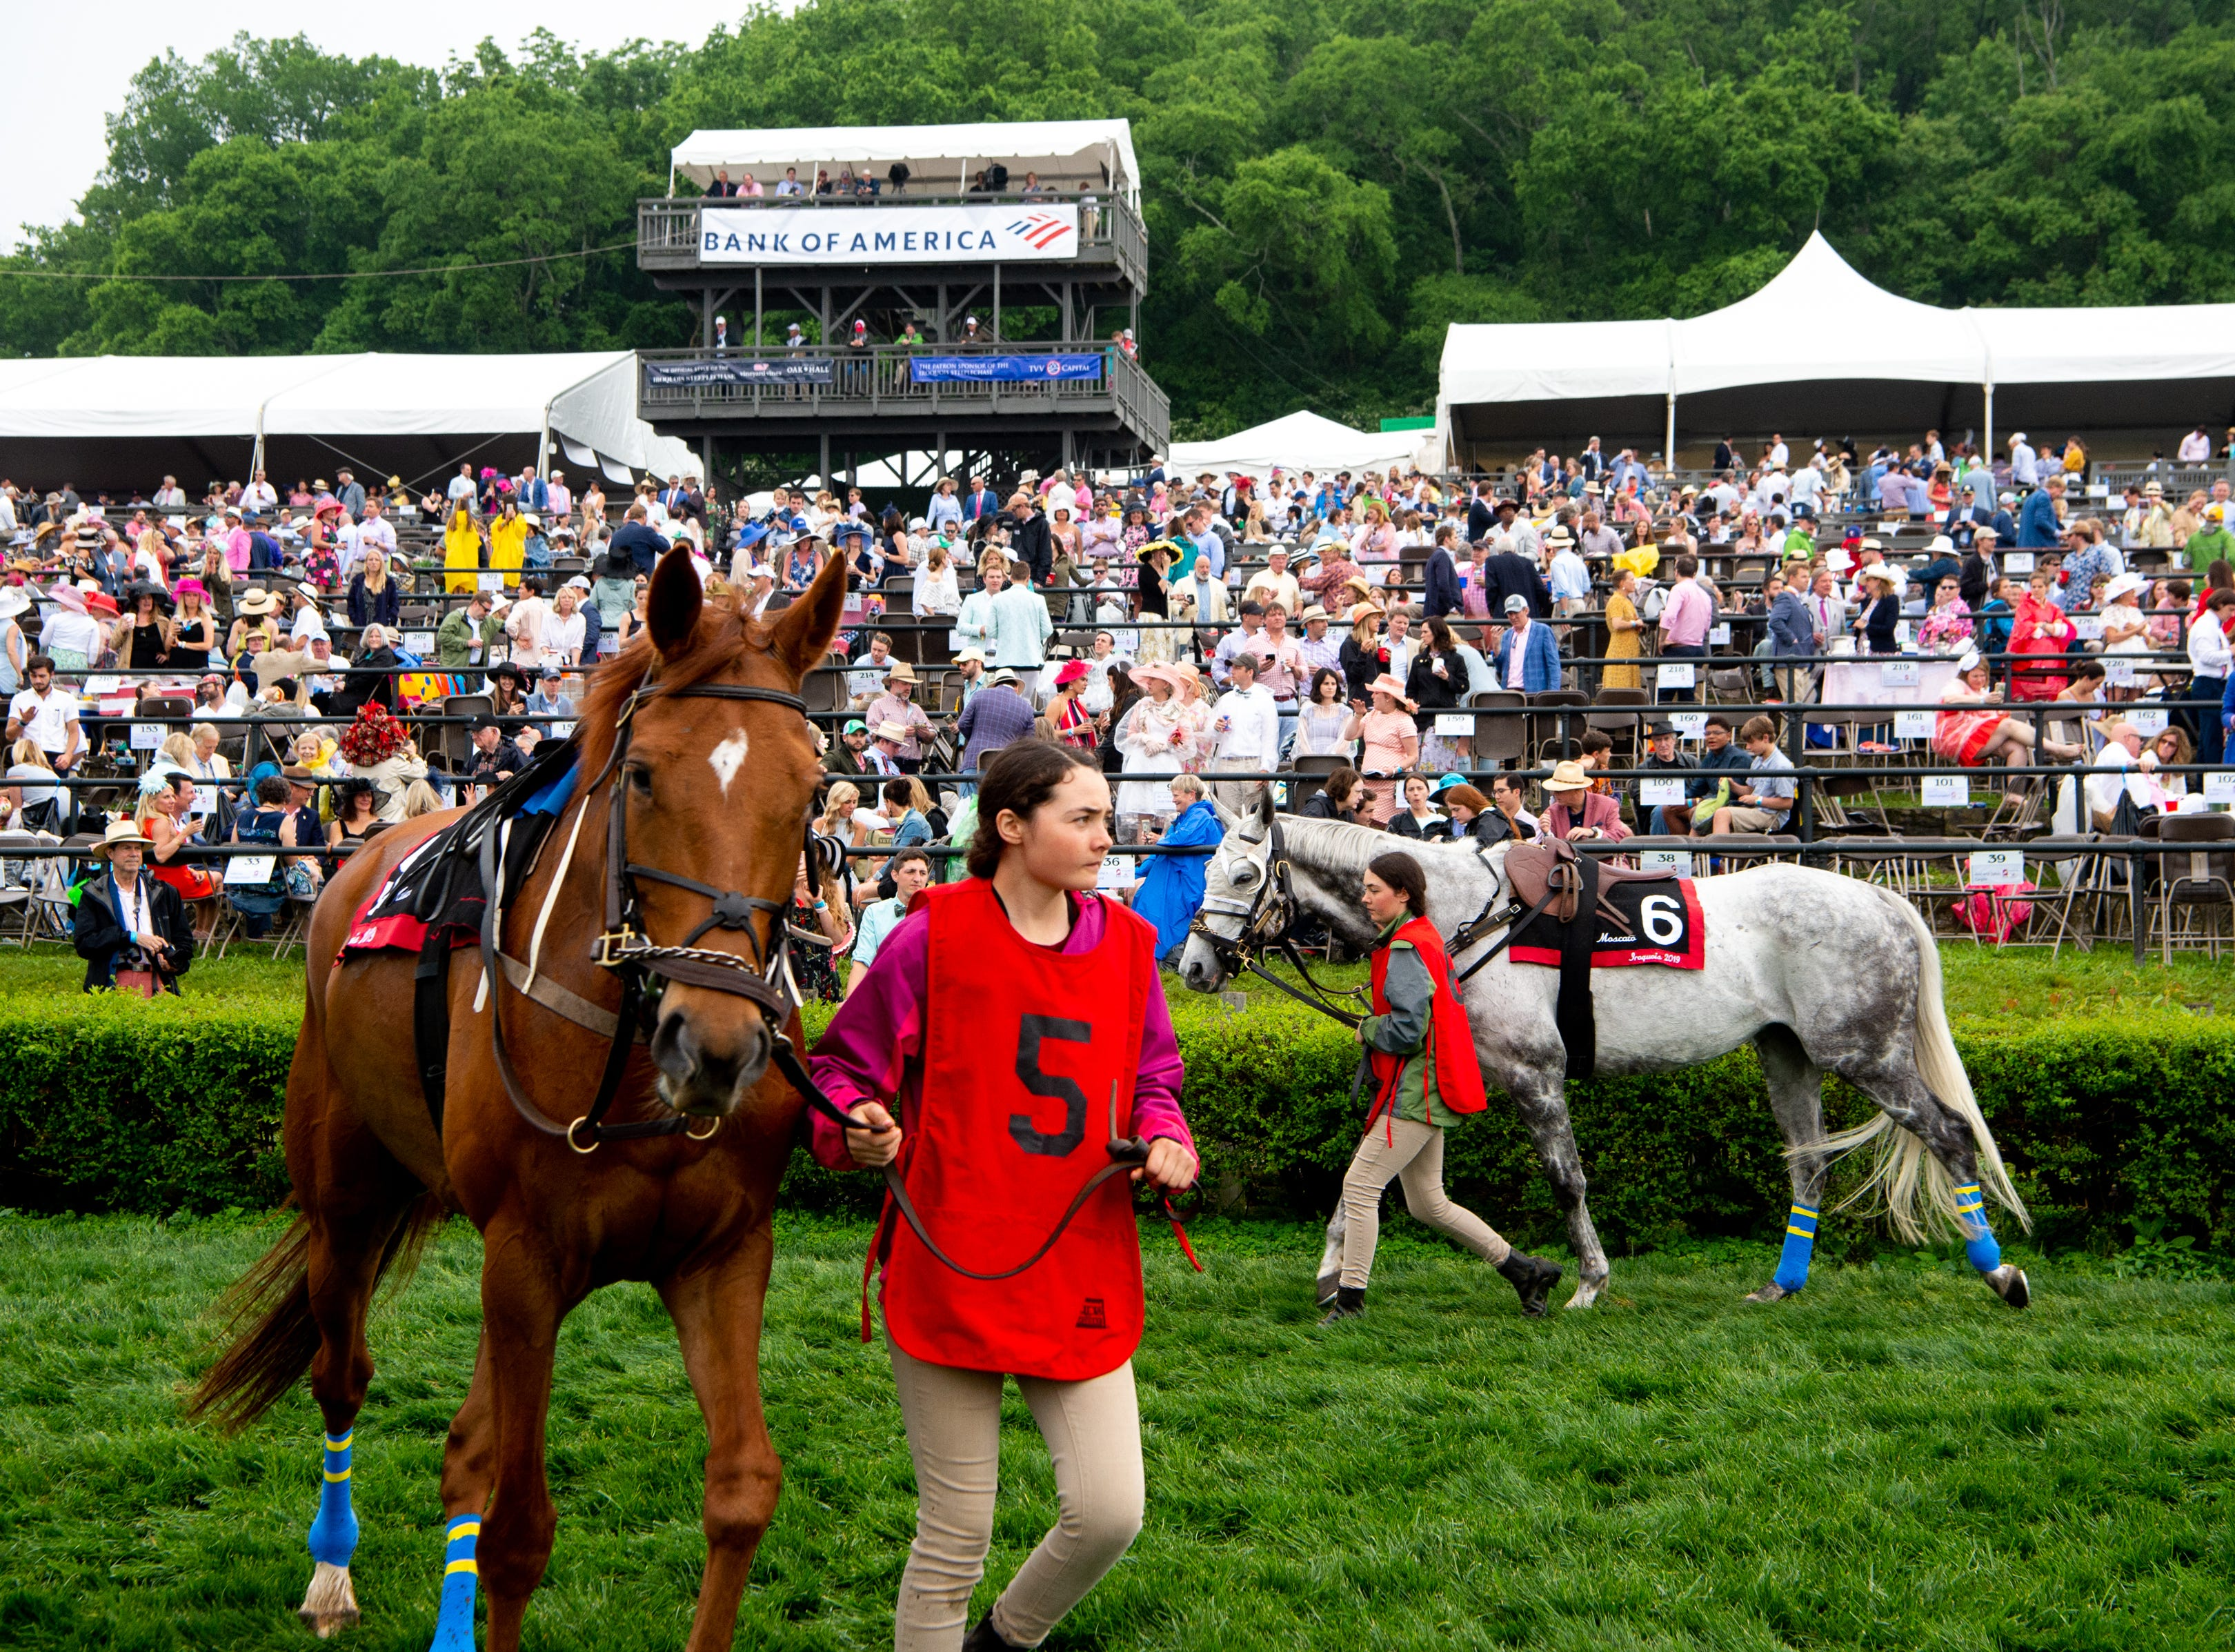 Horses are walked before the seventh race of the Iroquois Steeplechase at Percy Warner Park Saturday, May 11, 2019, in Nashville, Tenn.